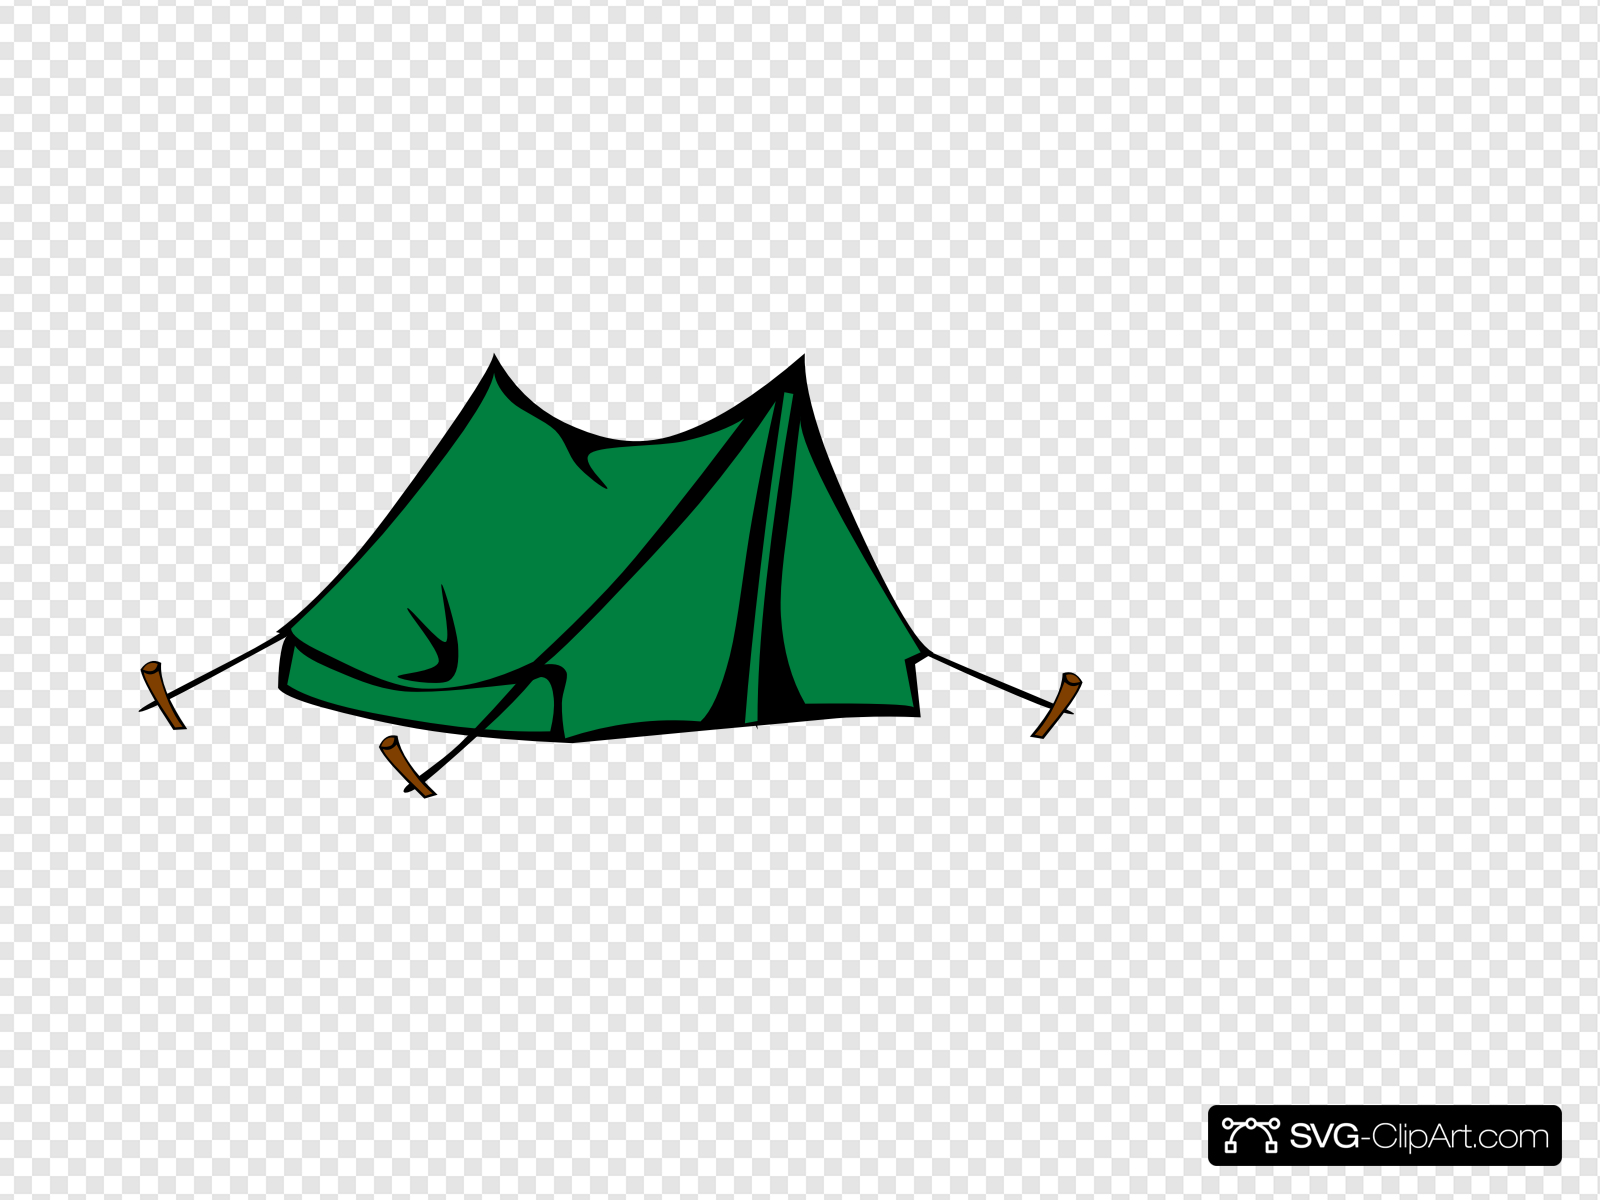 Clip art icon and. Clipart tent green tent